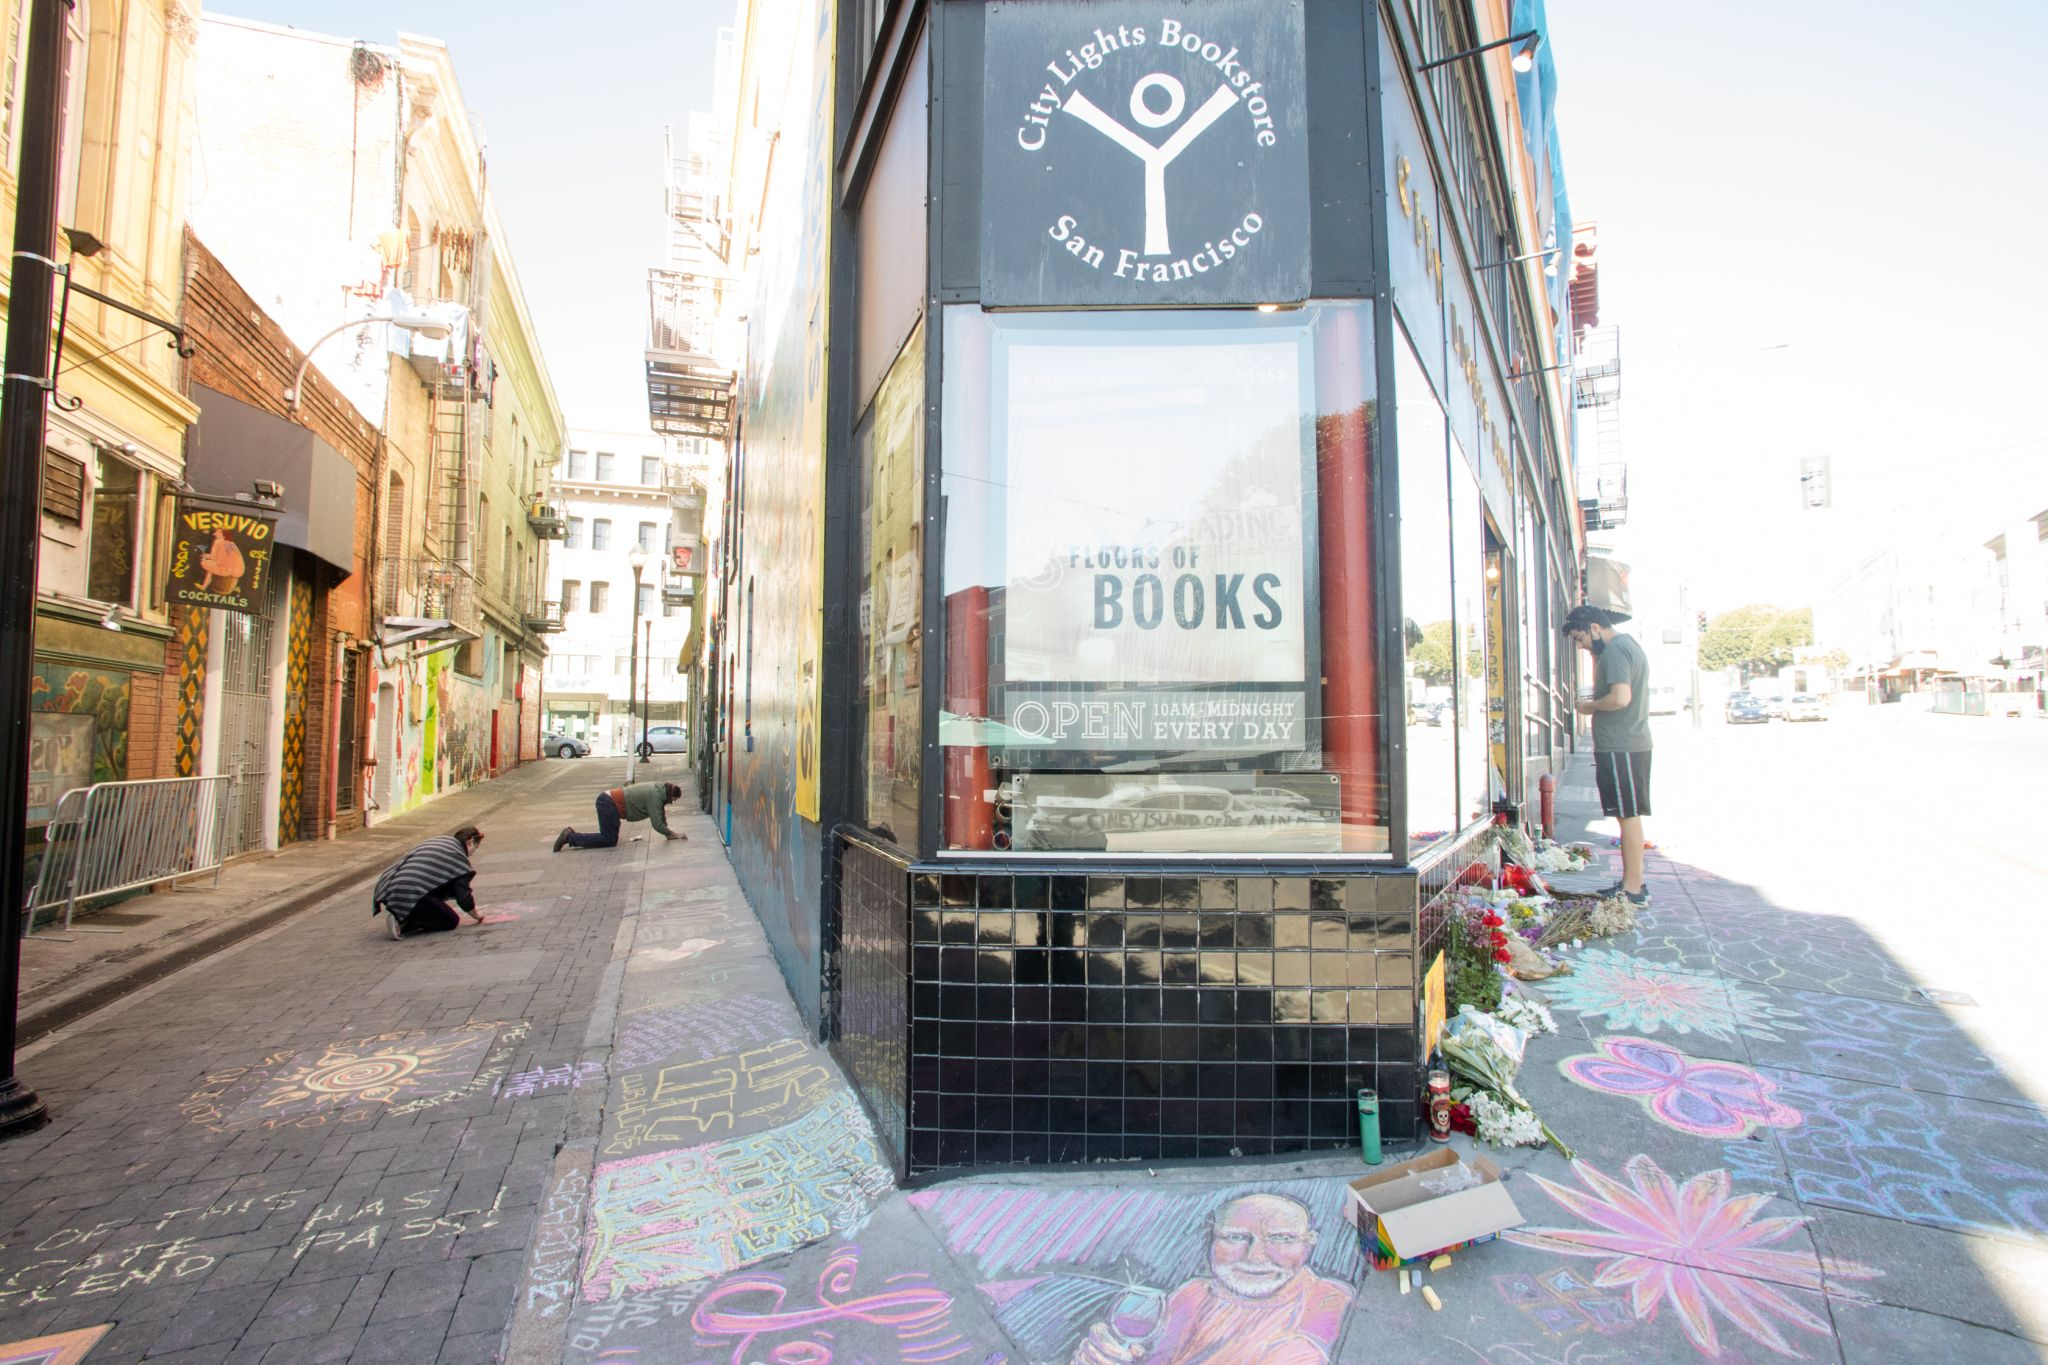 Several people add to the chalk art memorial outside City Lights Booksellers & Publishers. An impromptu memorial in honor of Lawrence Ferlinghetti appeared overnight in front of the City Lights bookstore in San Francisco on Feb. 24, 2021.